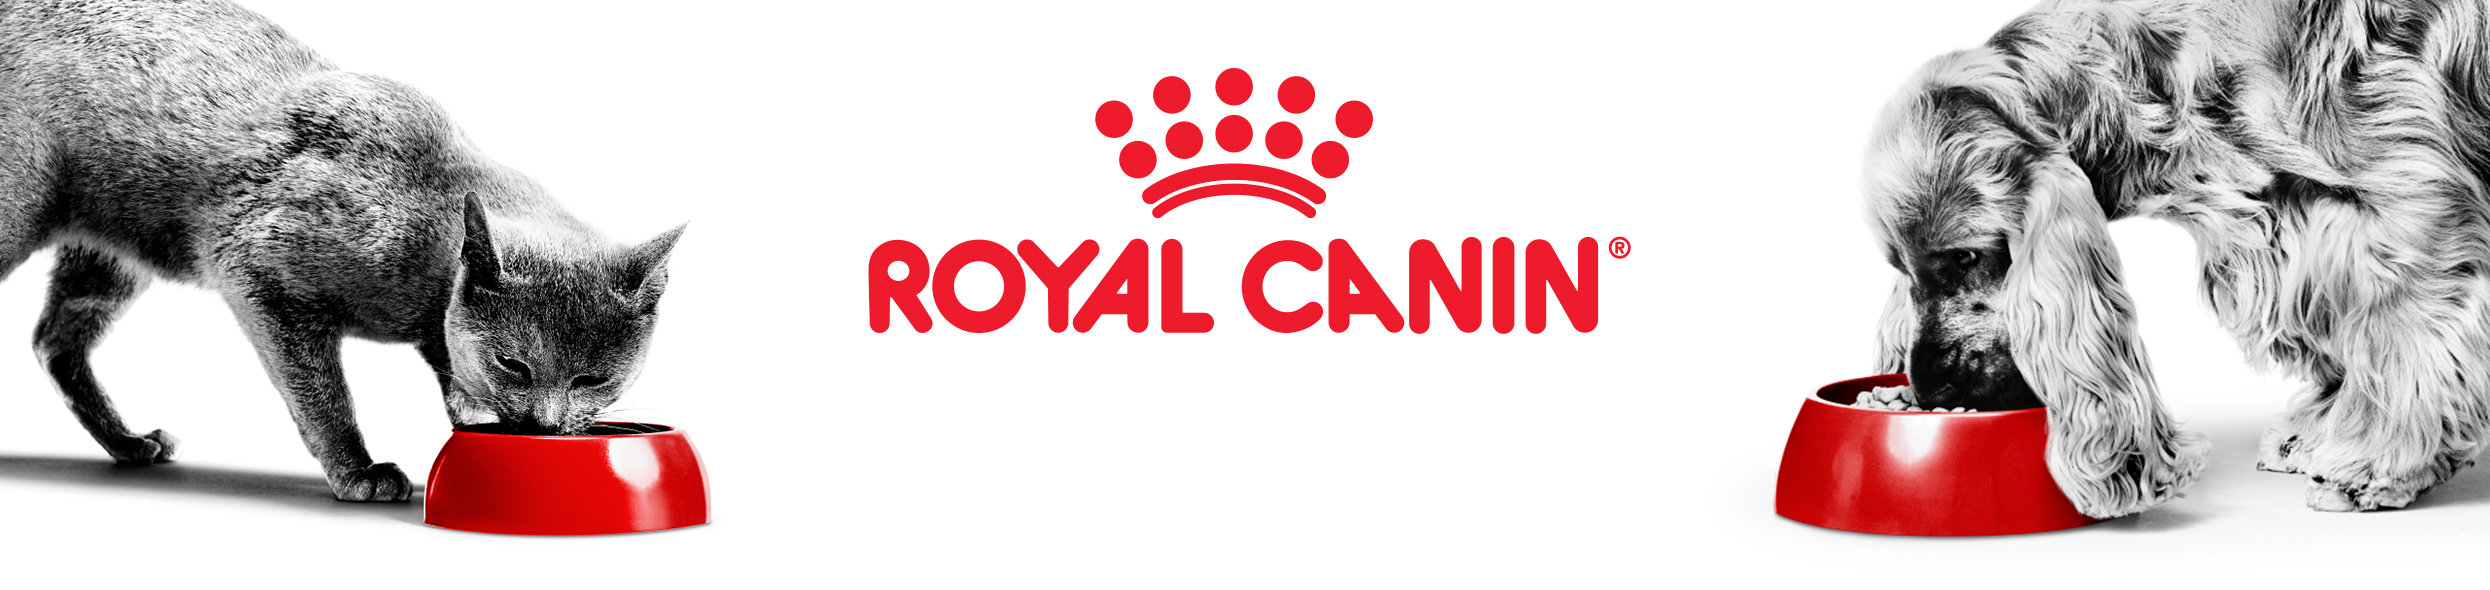 Royal Canin Main Banner